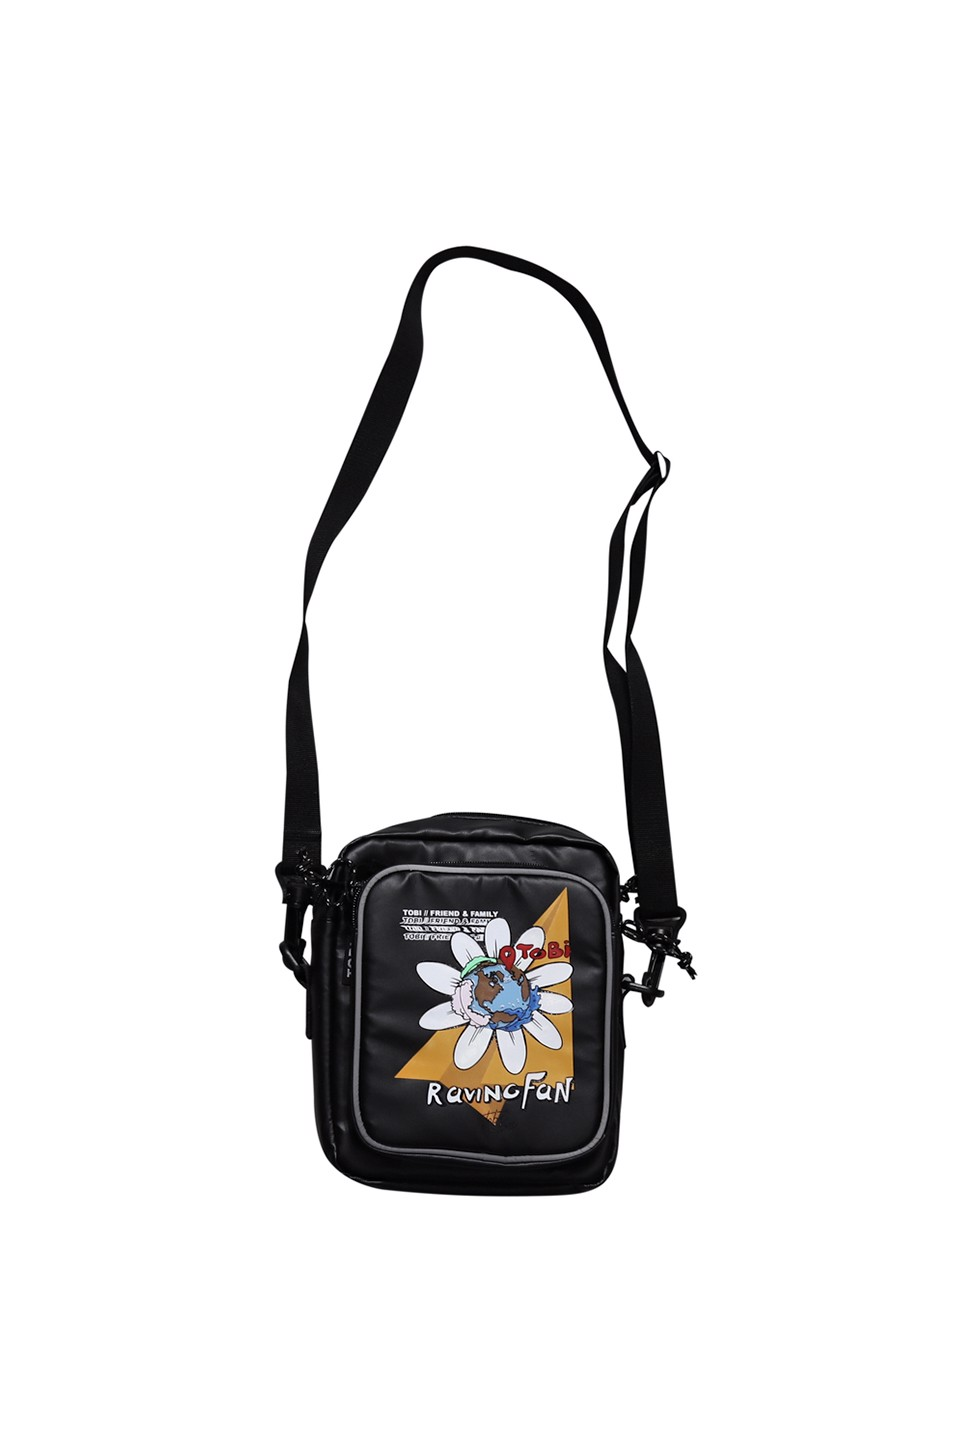 Raving Fans Shoulder Bag - Black